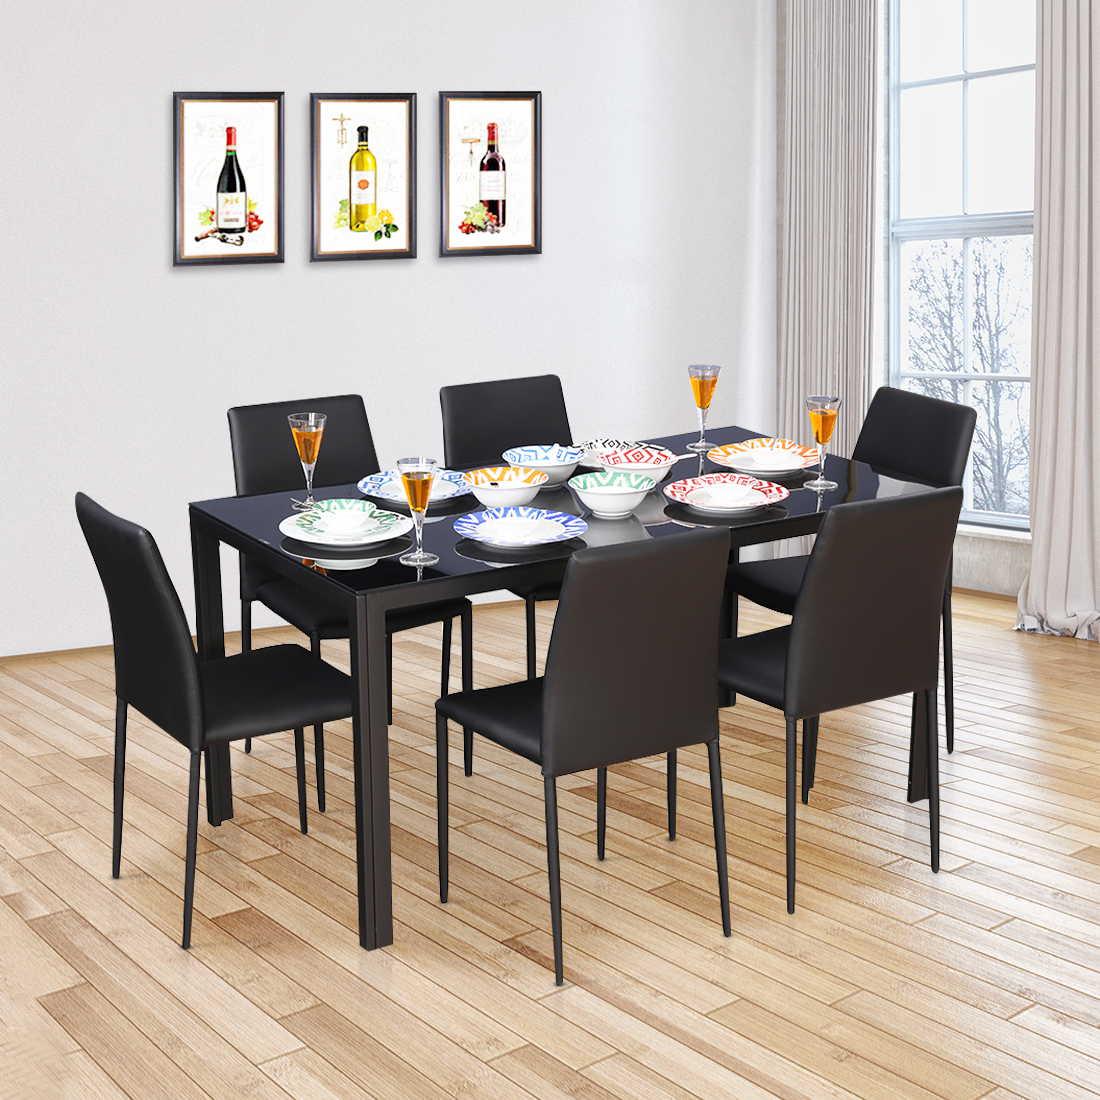 Marko Mild Steel Six Seater Dining Set in Black Colour by HomeTown